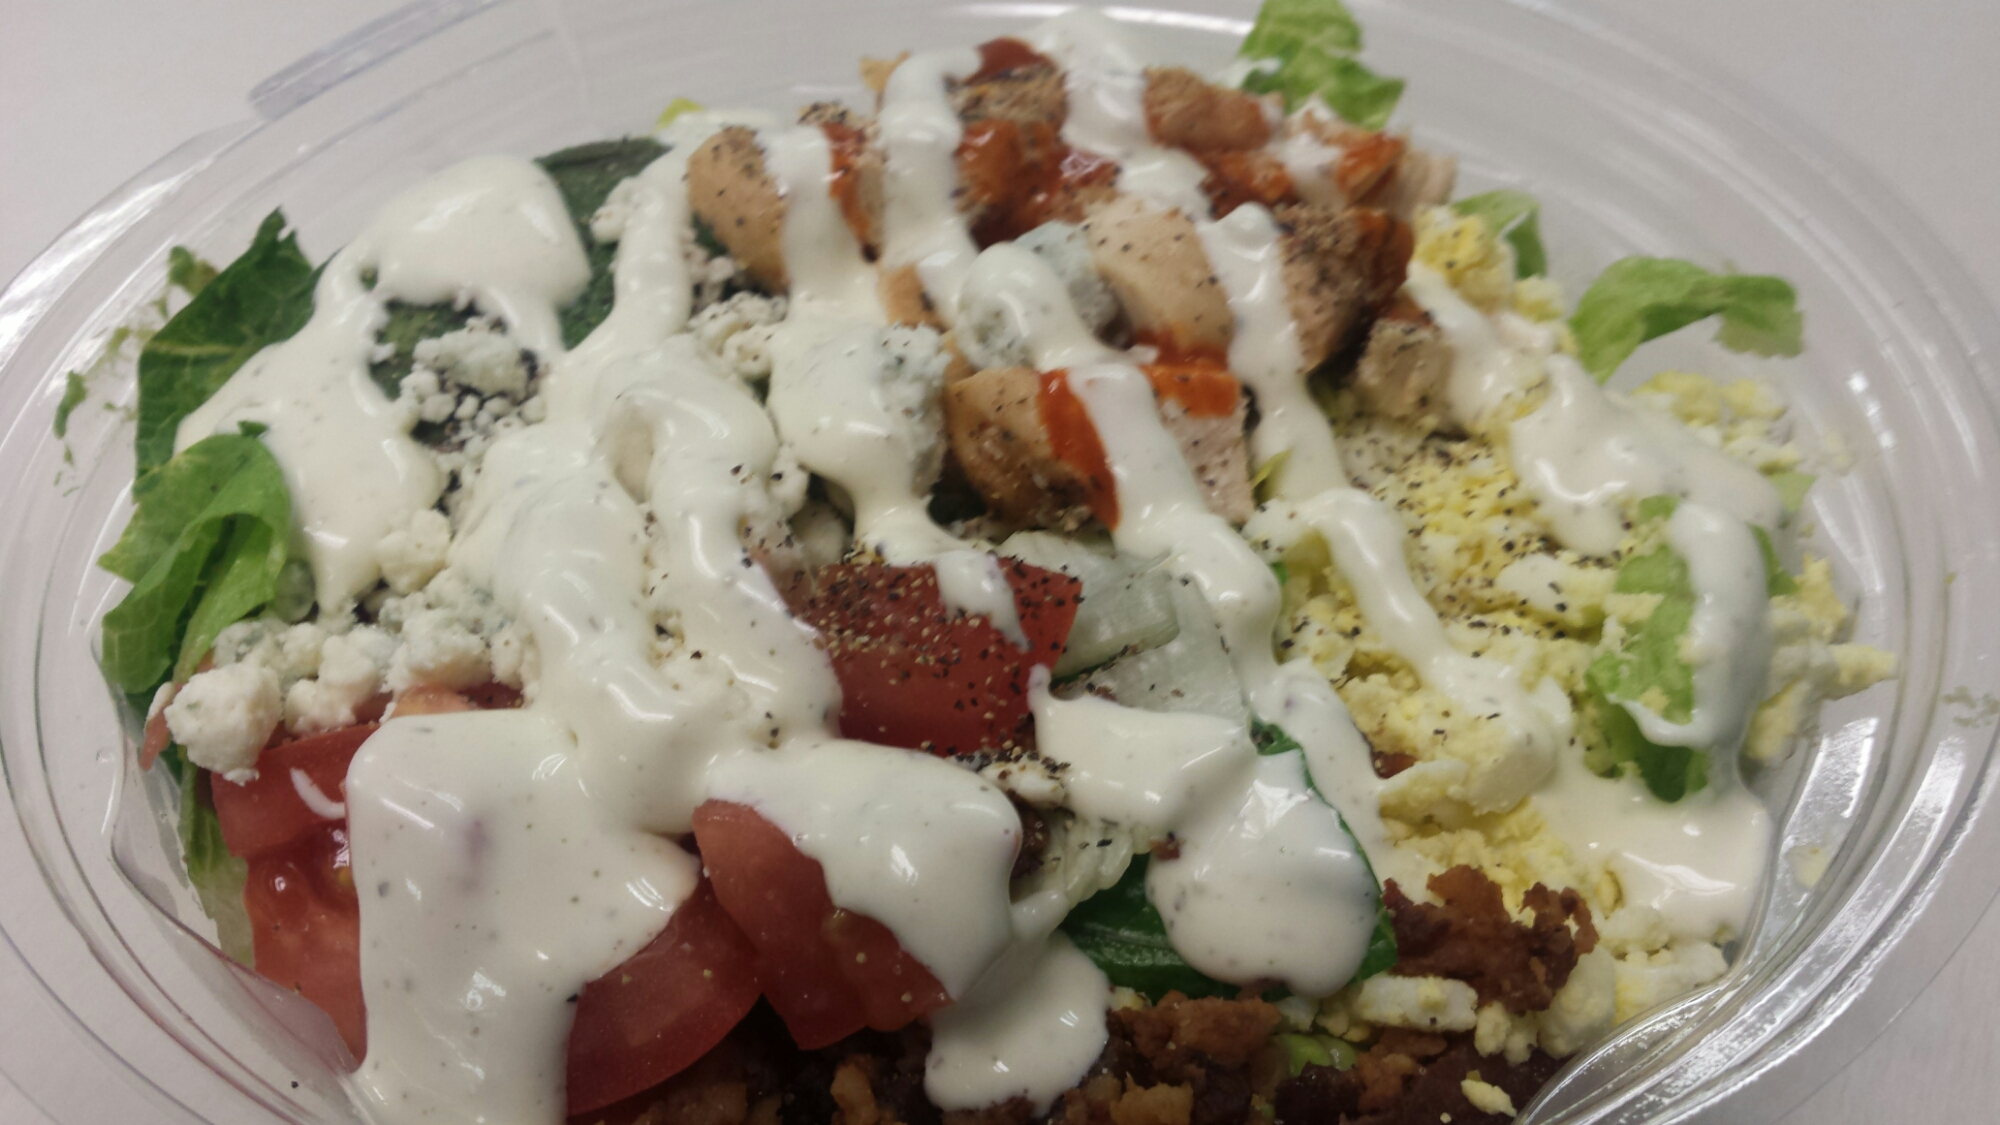 Cobb Salad - bacon, avocado, boiled eggs, ranch dressing, blue cheese, tomatoes